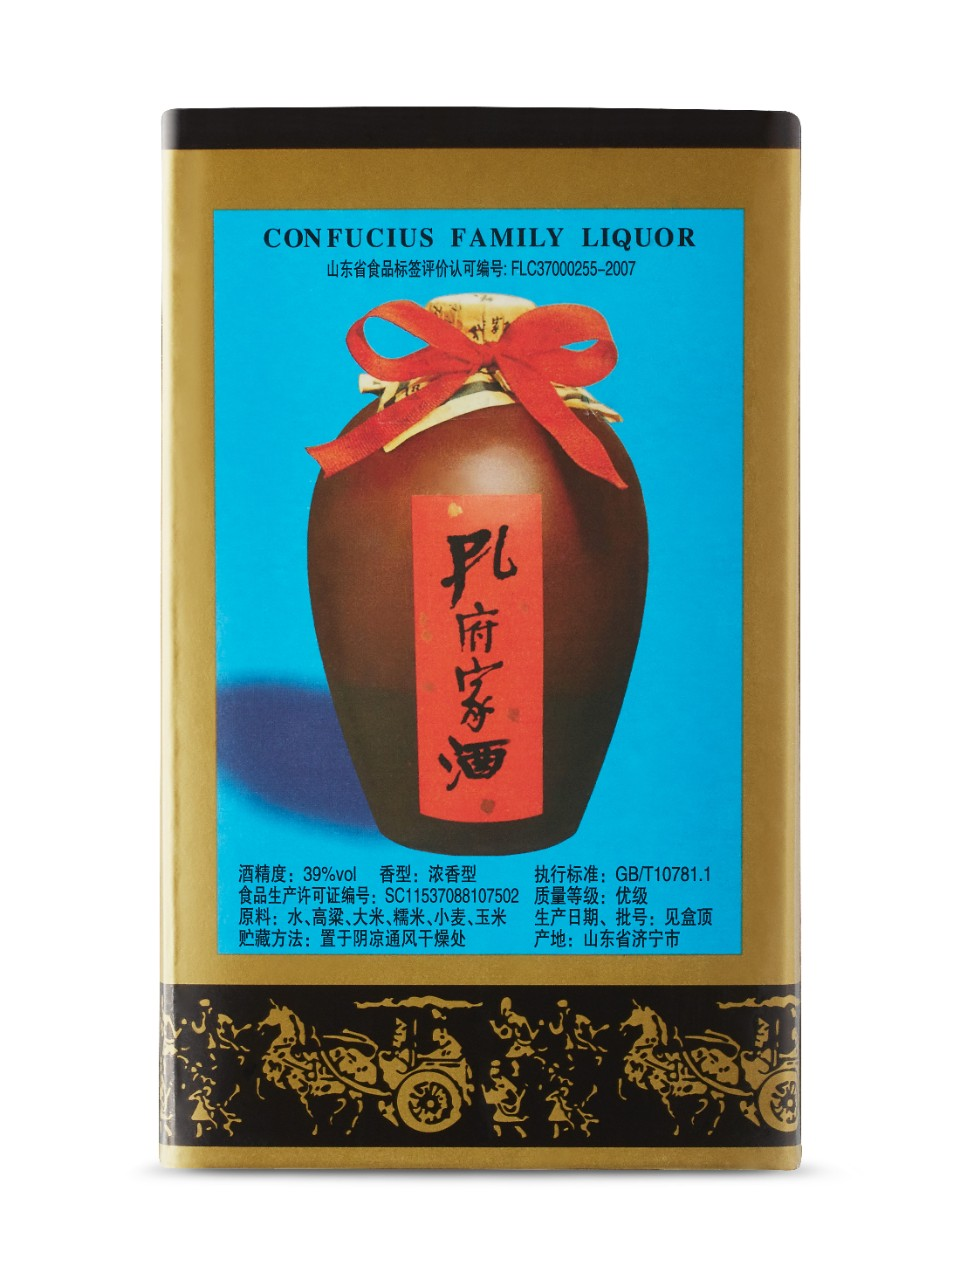 Confucius Family Liquor in Ceramic Bottle from LCBO